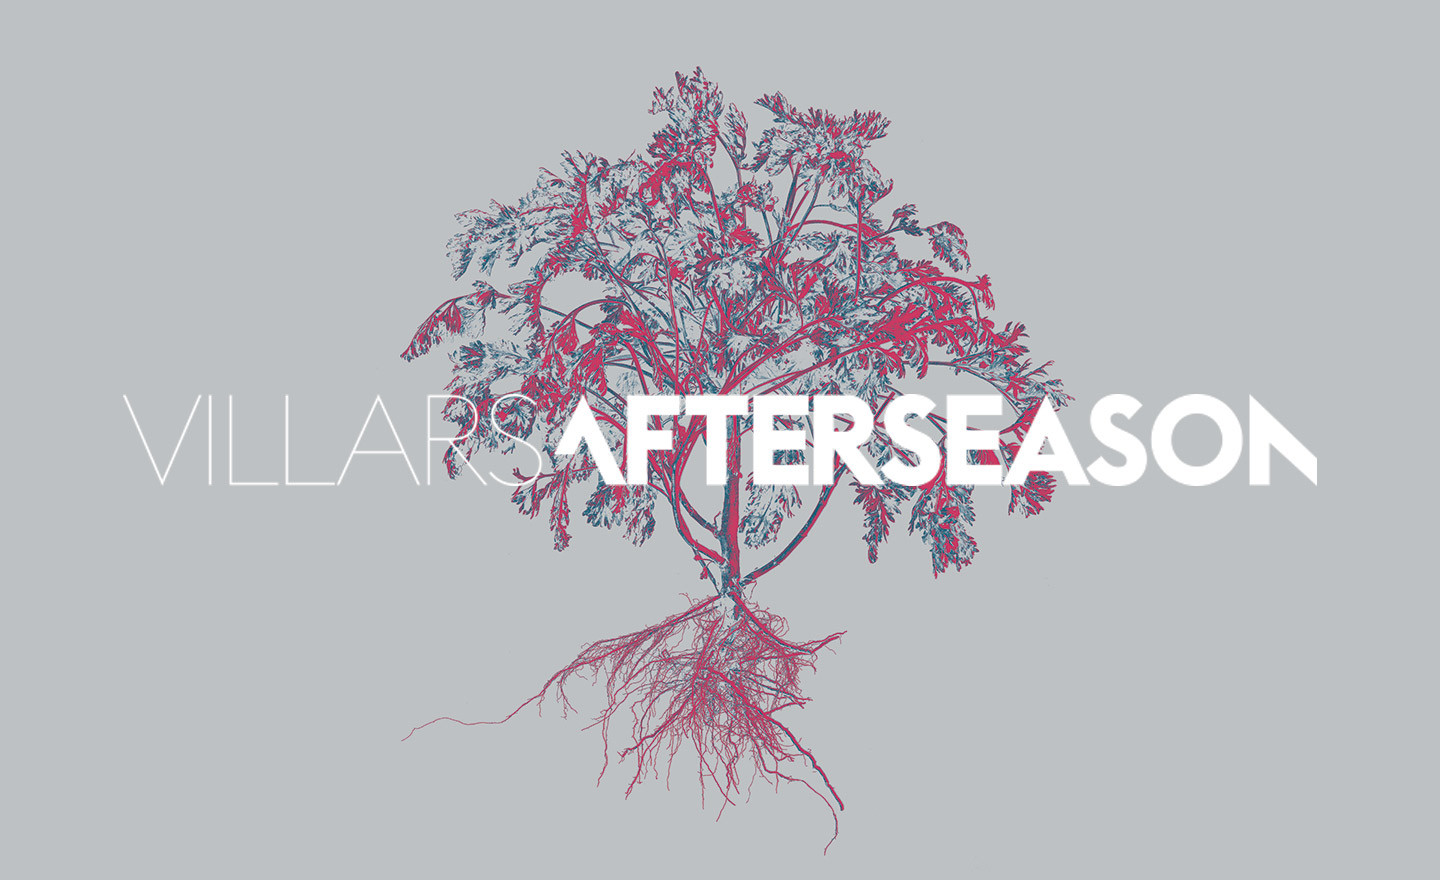 Afterseason Festival